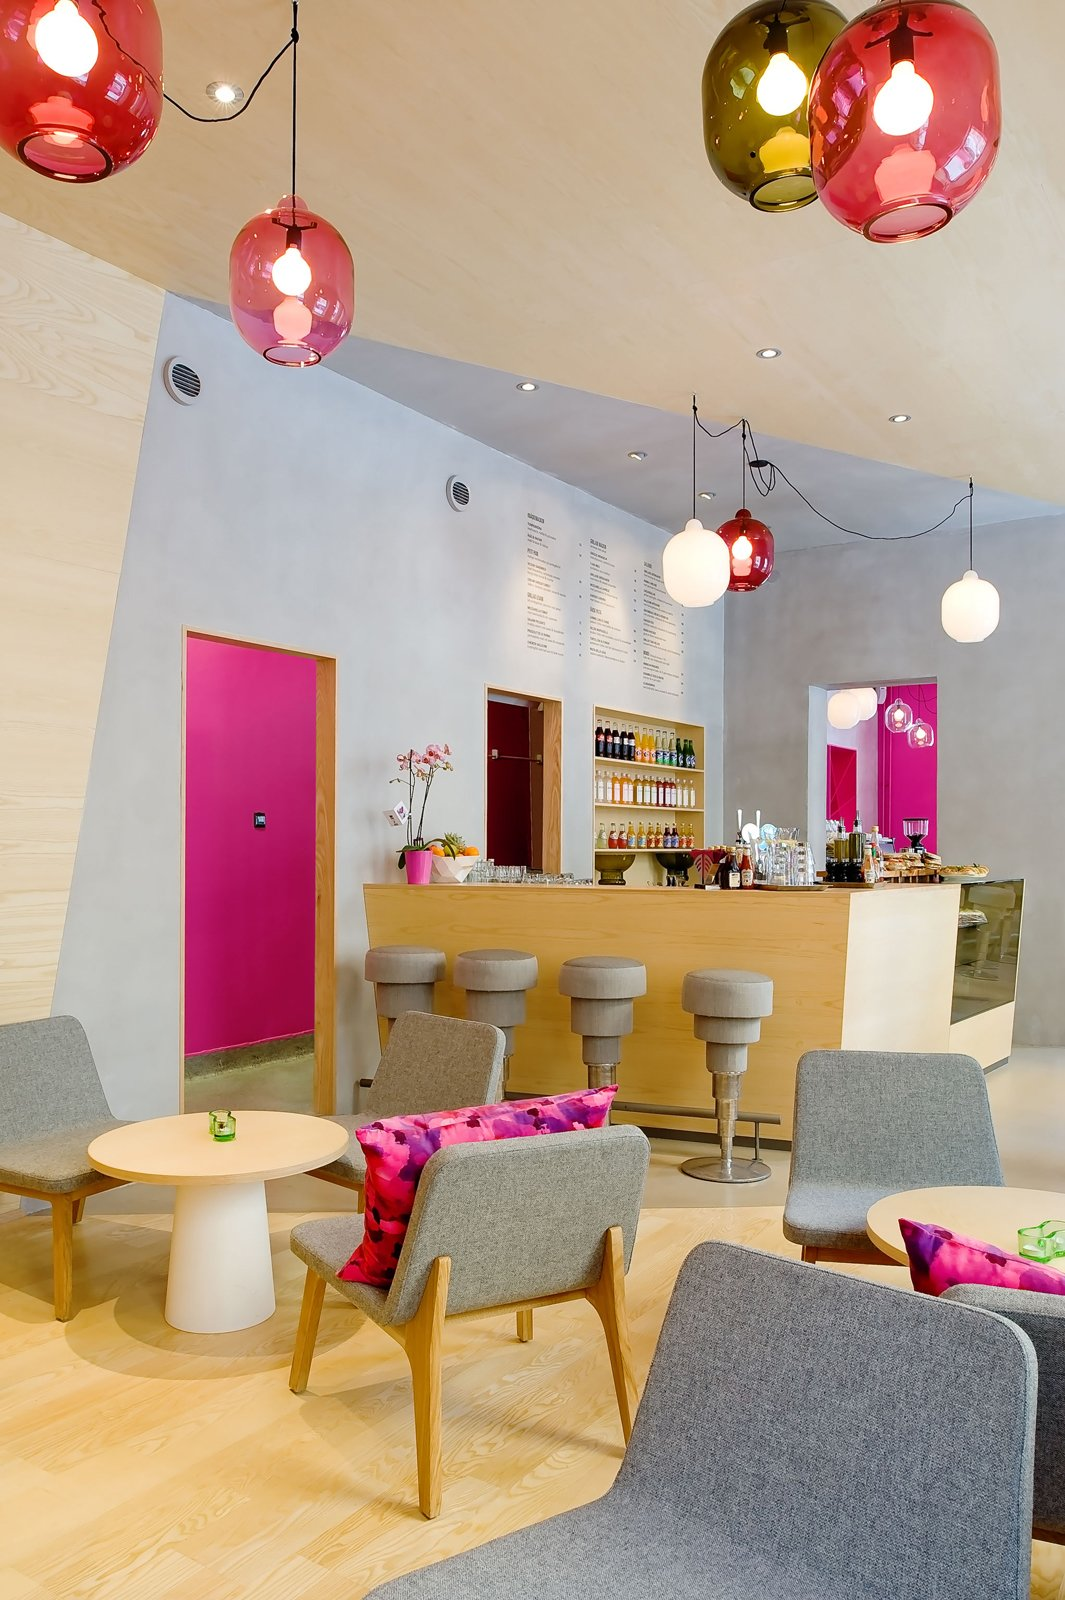 """As you can see from the bright accents of powder blue and Barbie pink, the interior is meant to elicit a strong response. According to Note, owner Michael Toutoungi said that he wanted a space that """"people either love or hate and that nobody is indifferent to."""" The aesthetic is definitely stronger and more playful than most cafe's I've visited.  Photo 14 of 21 in The Pantone Choice: Top 10 Colors for Spring 2017 from Coffee Break: Stockholm's Cafe Foam"""